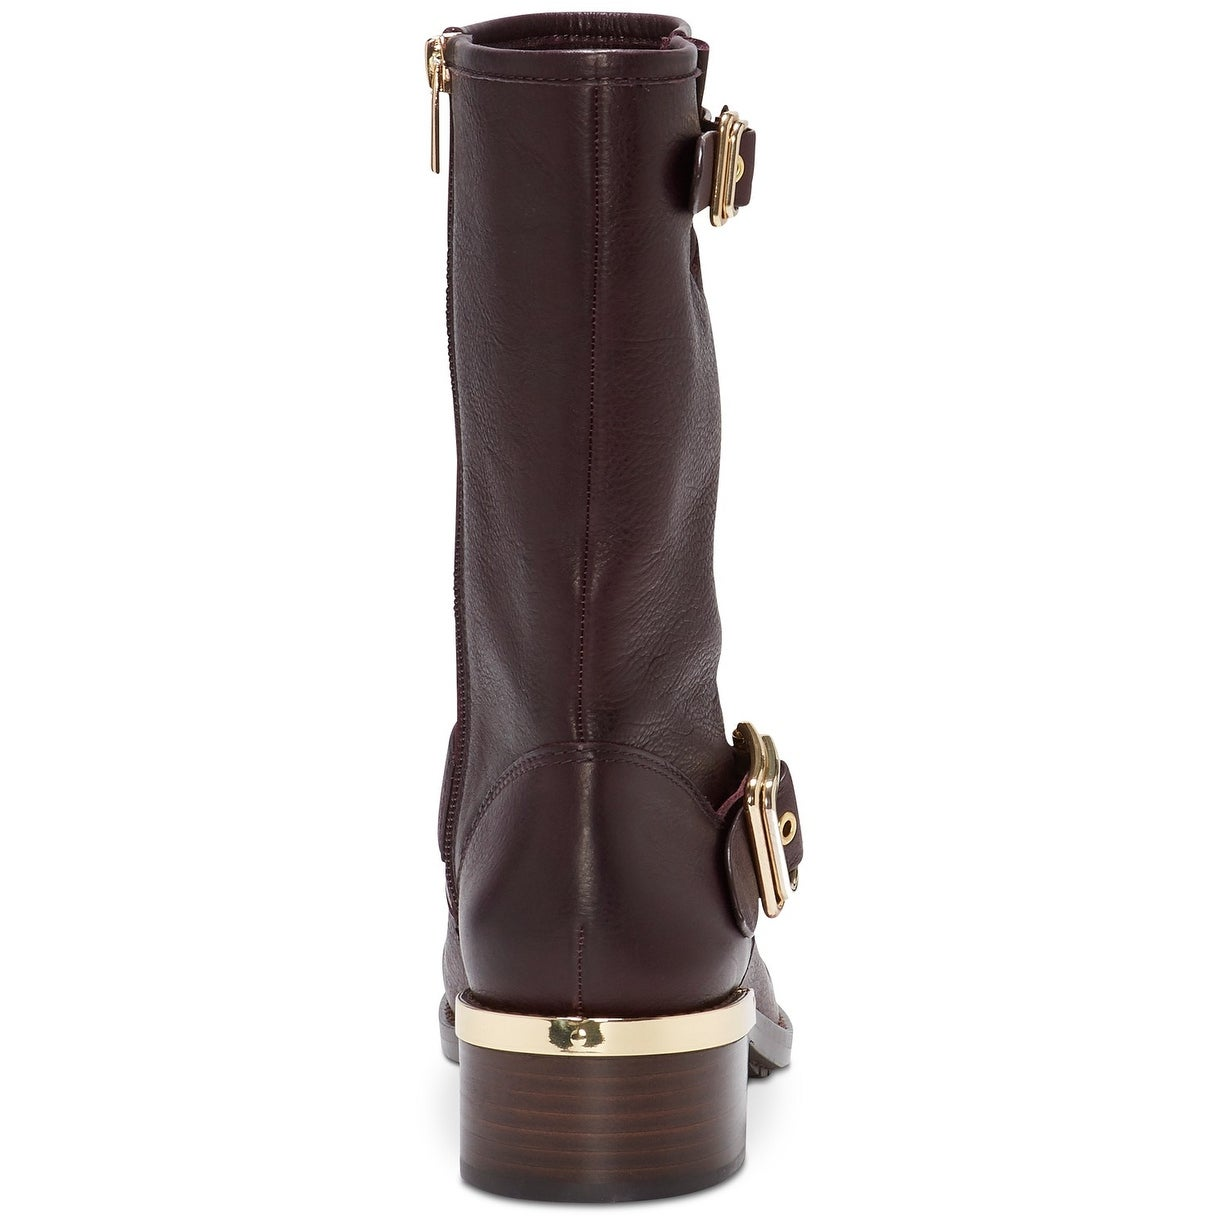 8ba04776dbf Vince Camuto Womens Windy Leather Round Toe Mid-Calf Motorcycle Boots